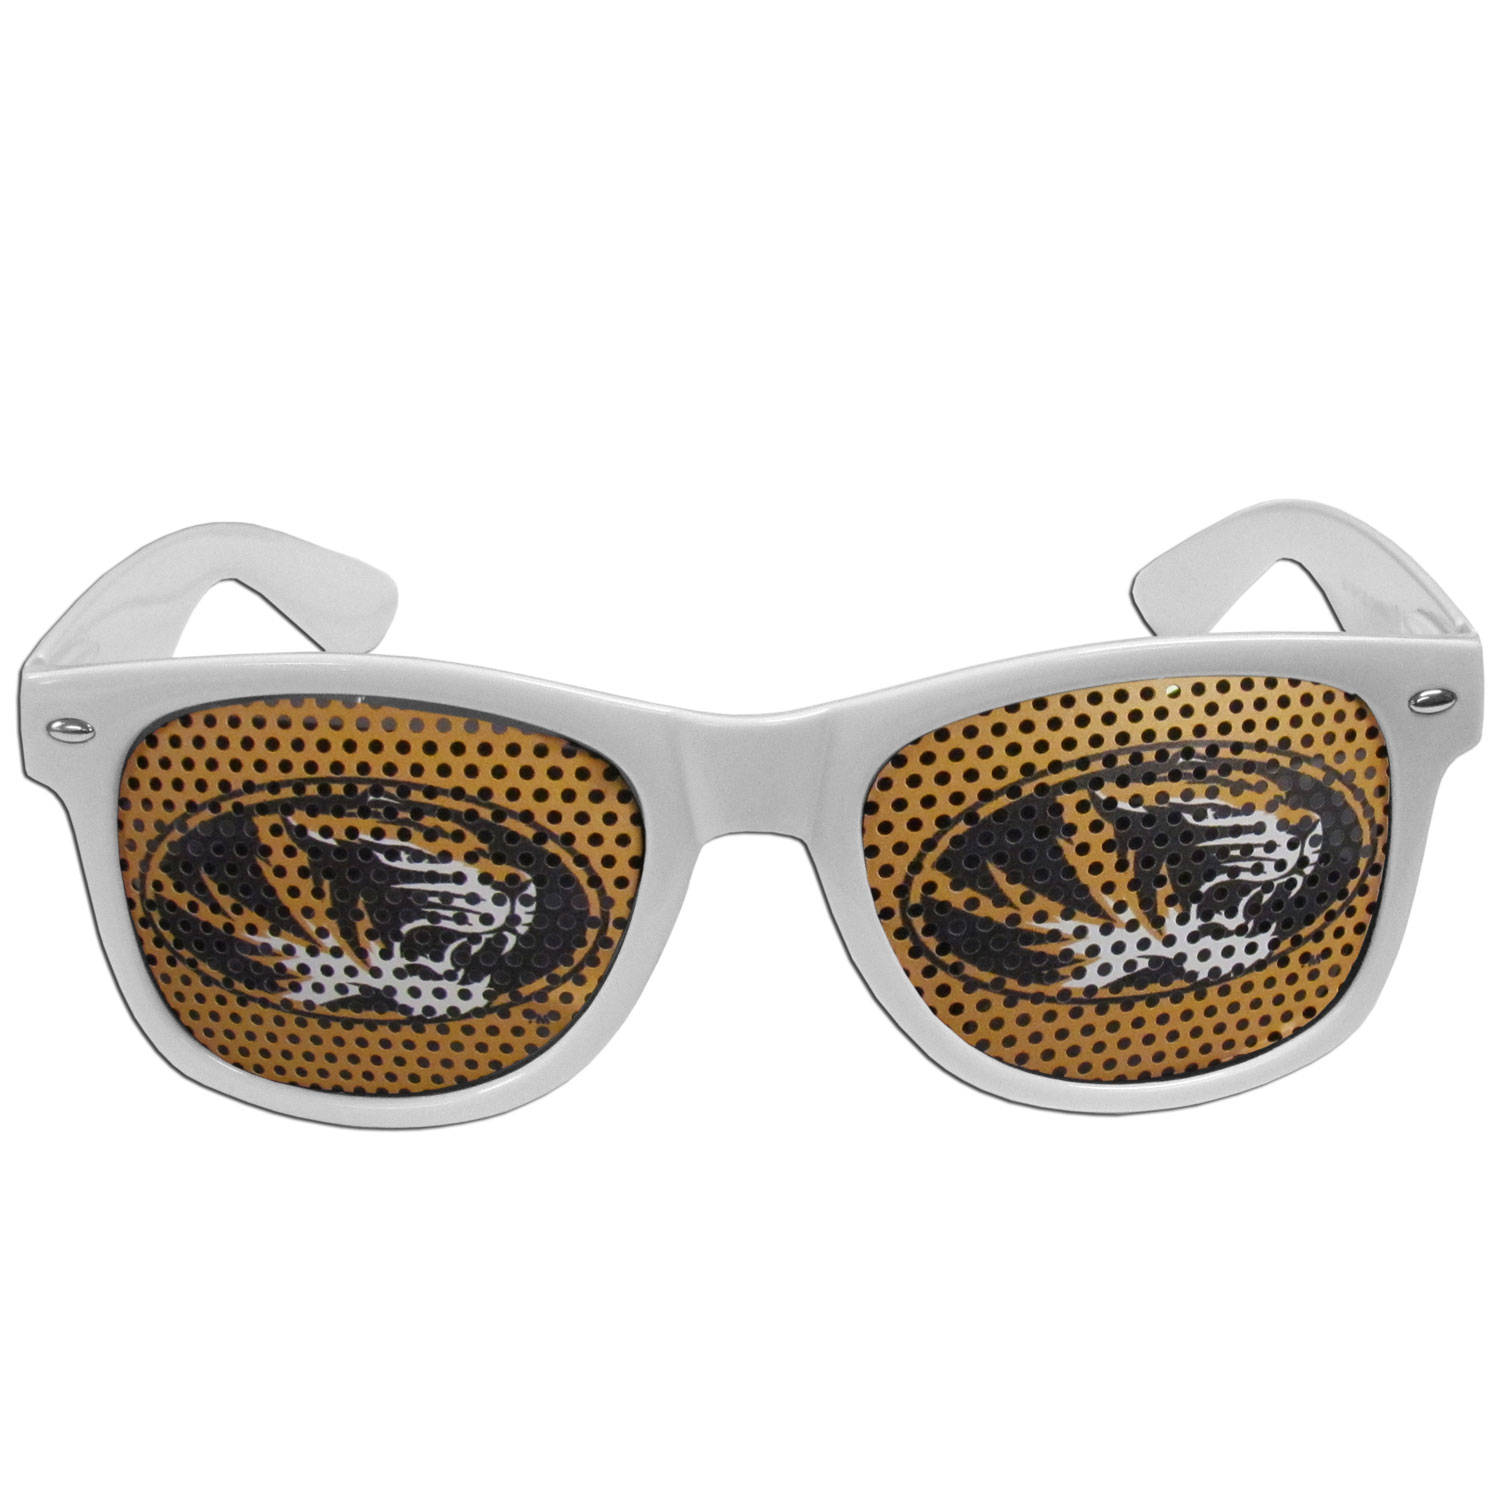 Missouri Tigers Game Day Shades - Our officially licensed game day shades are the perfect accessory for the devoted Missouri Tigers fan! The sunglasses have durable polycarbonate frames with flex hinges for comfort and damage resistance. The lenses feature brightly colored team clings that are perforated for visibility.